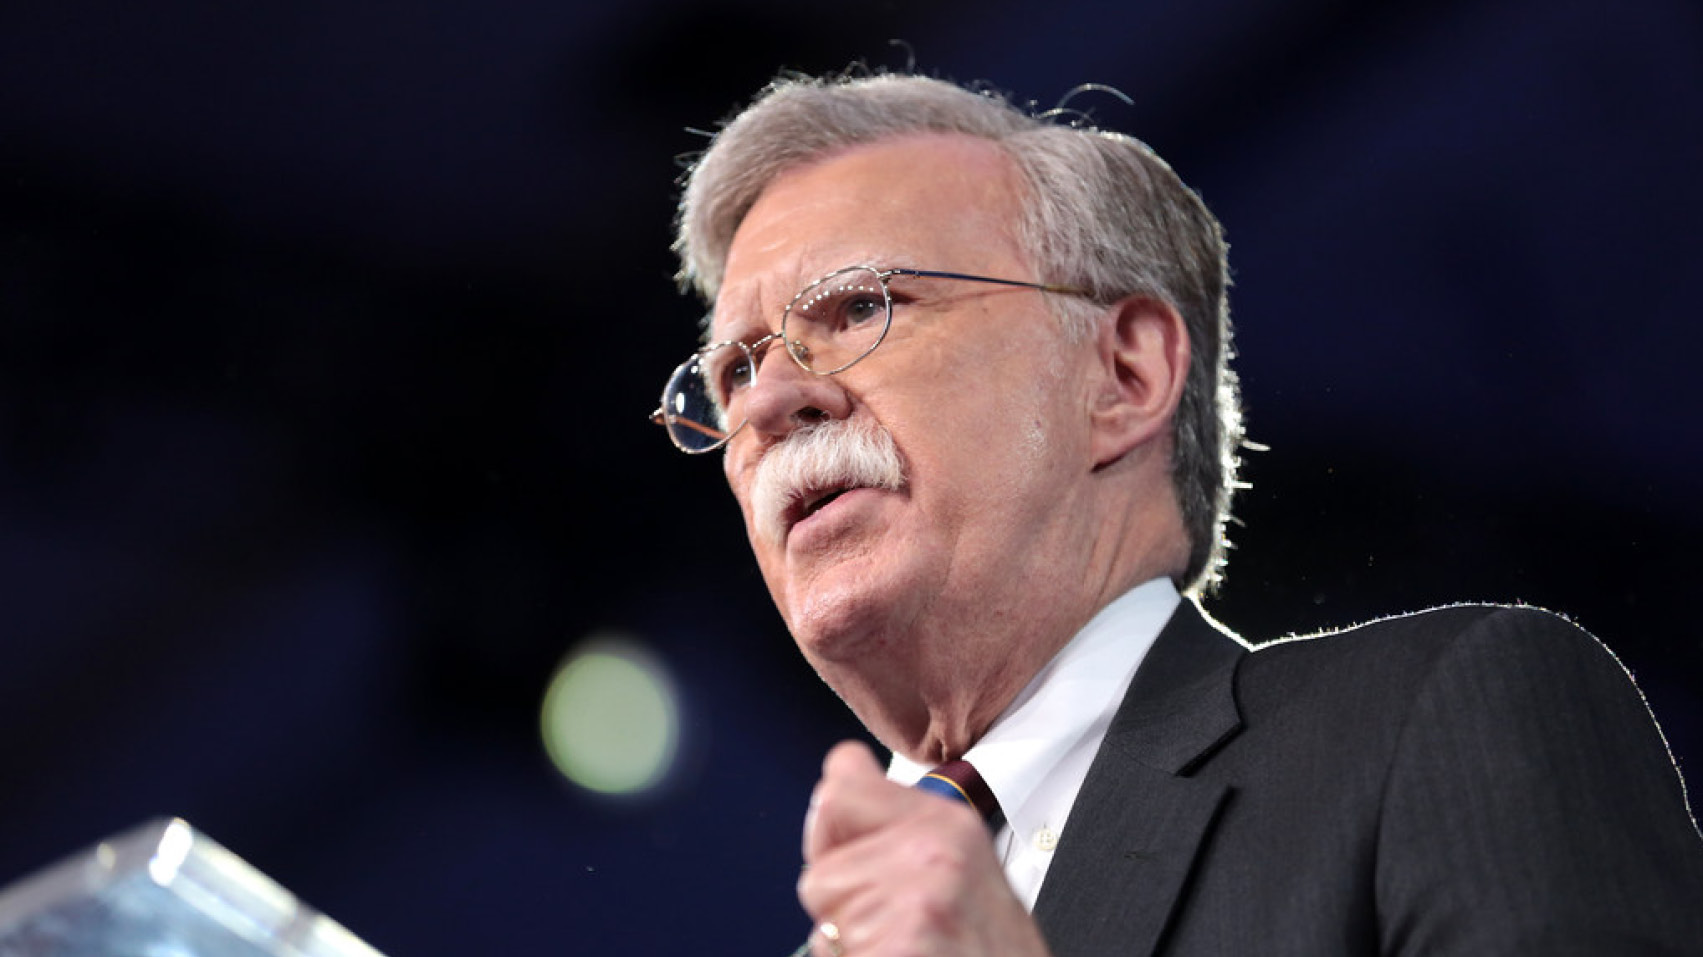 Peter Rough discussed the resignation of John Bolton as National Security Advisor.